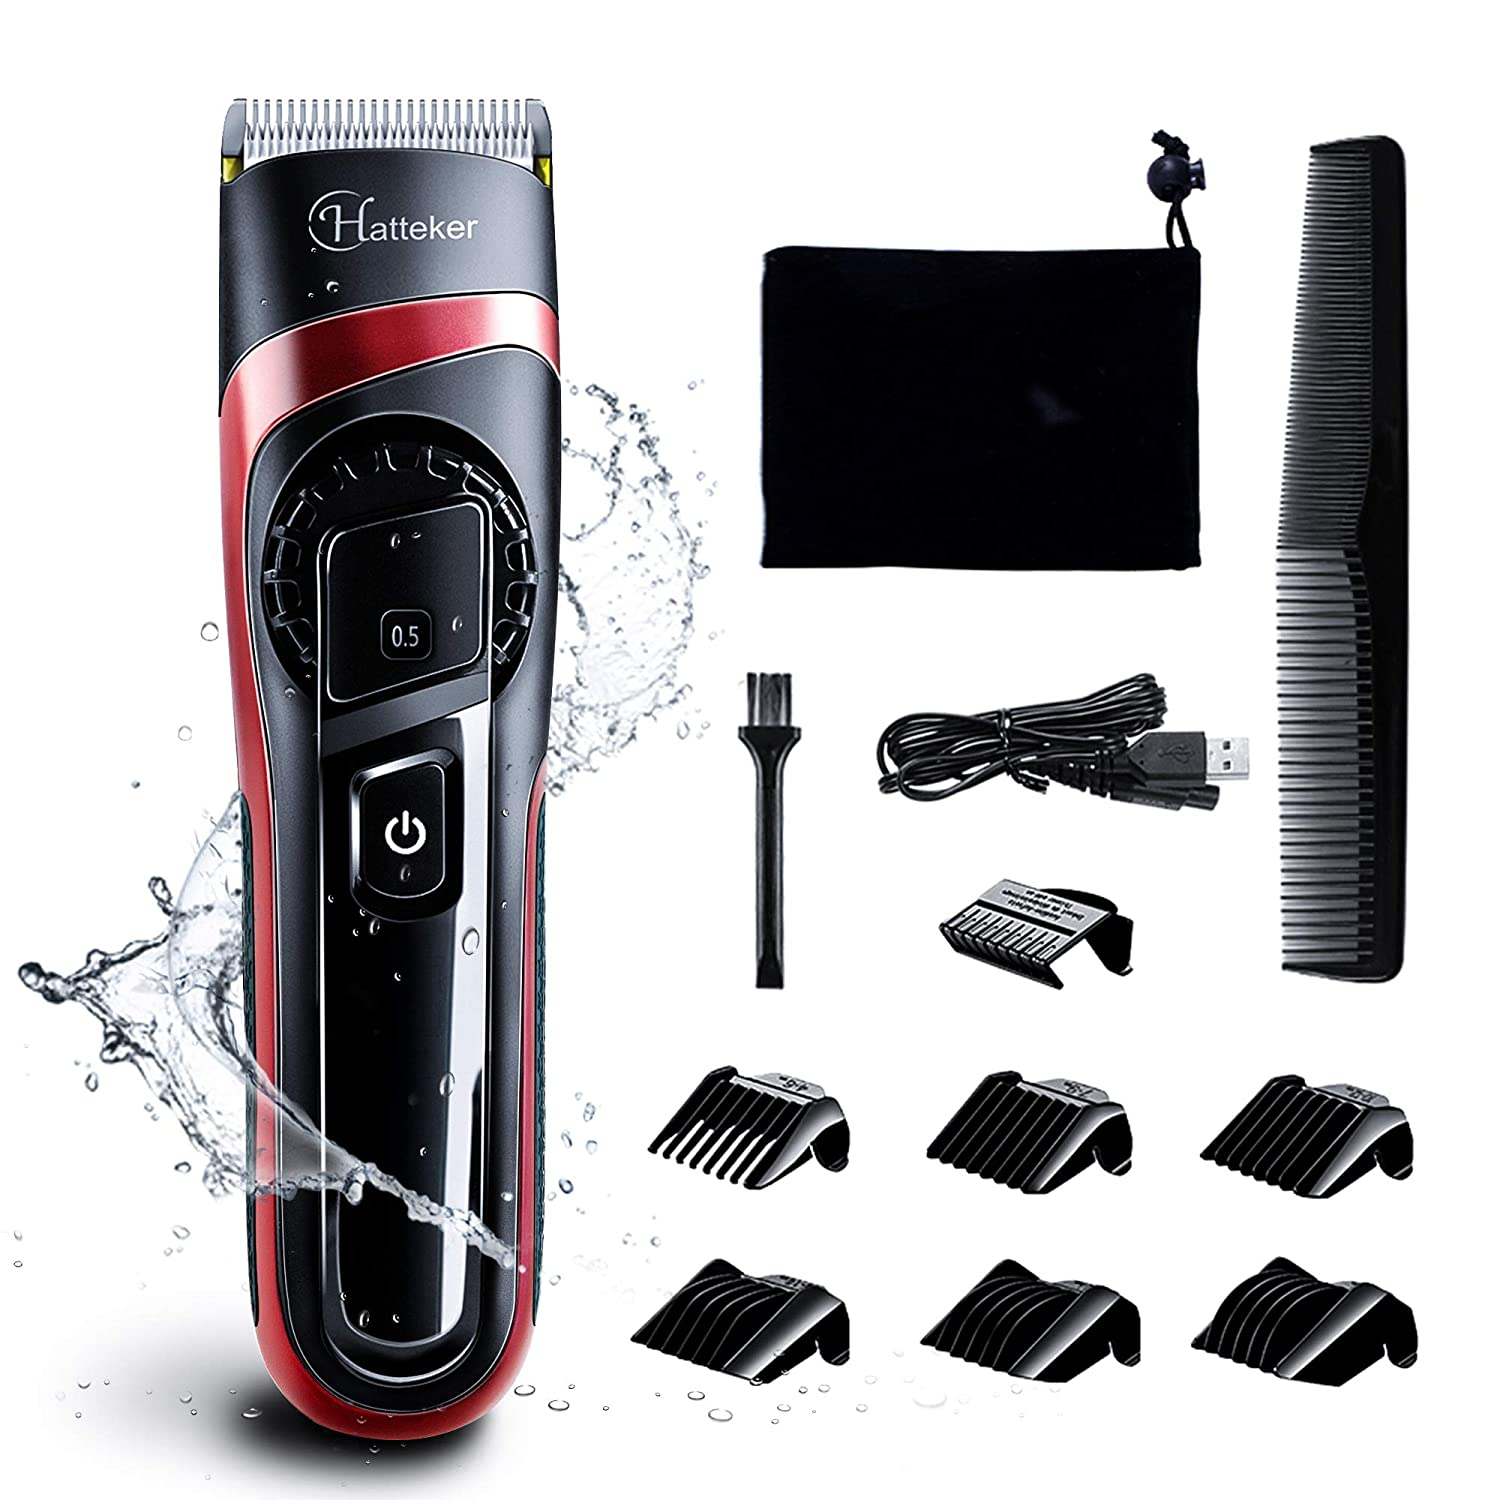 HATTEKER Hair Clippers for Men Cordless Hair Trimmer Professional Men's Beard Trimmer Waterproof Hair Cutting Kit with Fine Adjustment Wet/Dry